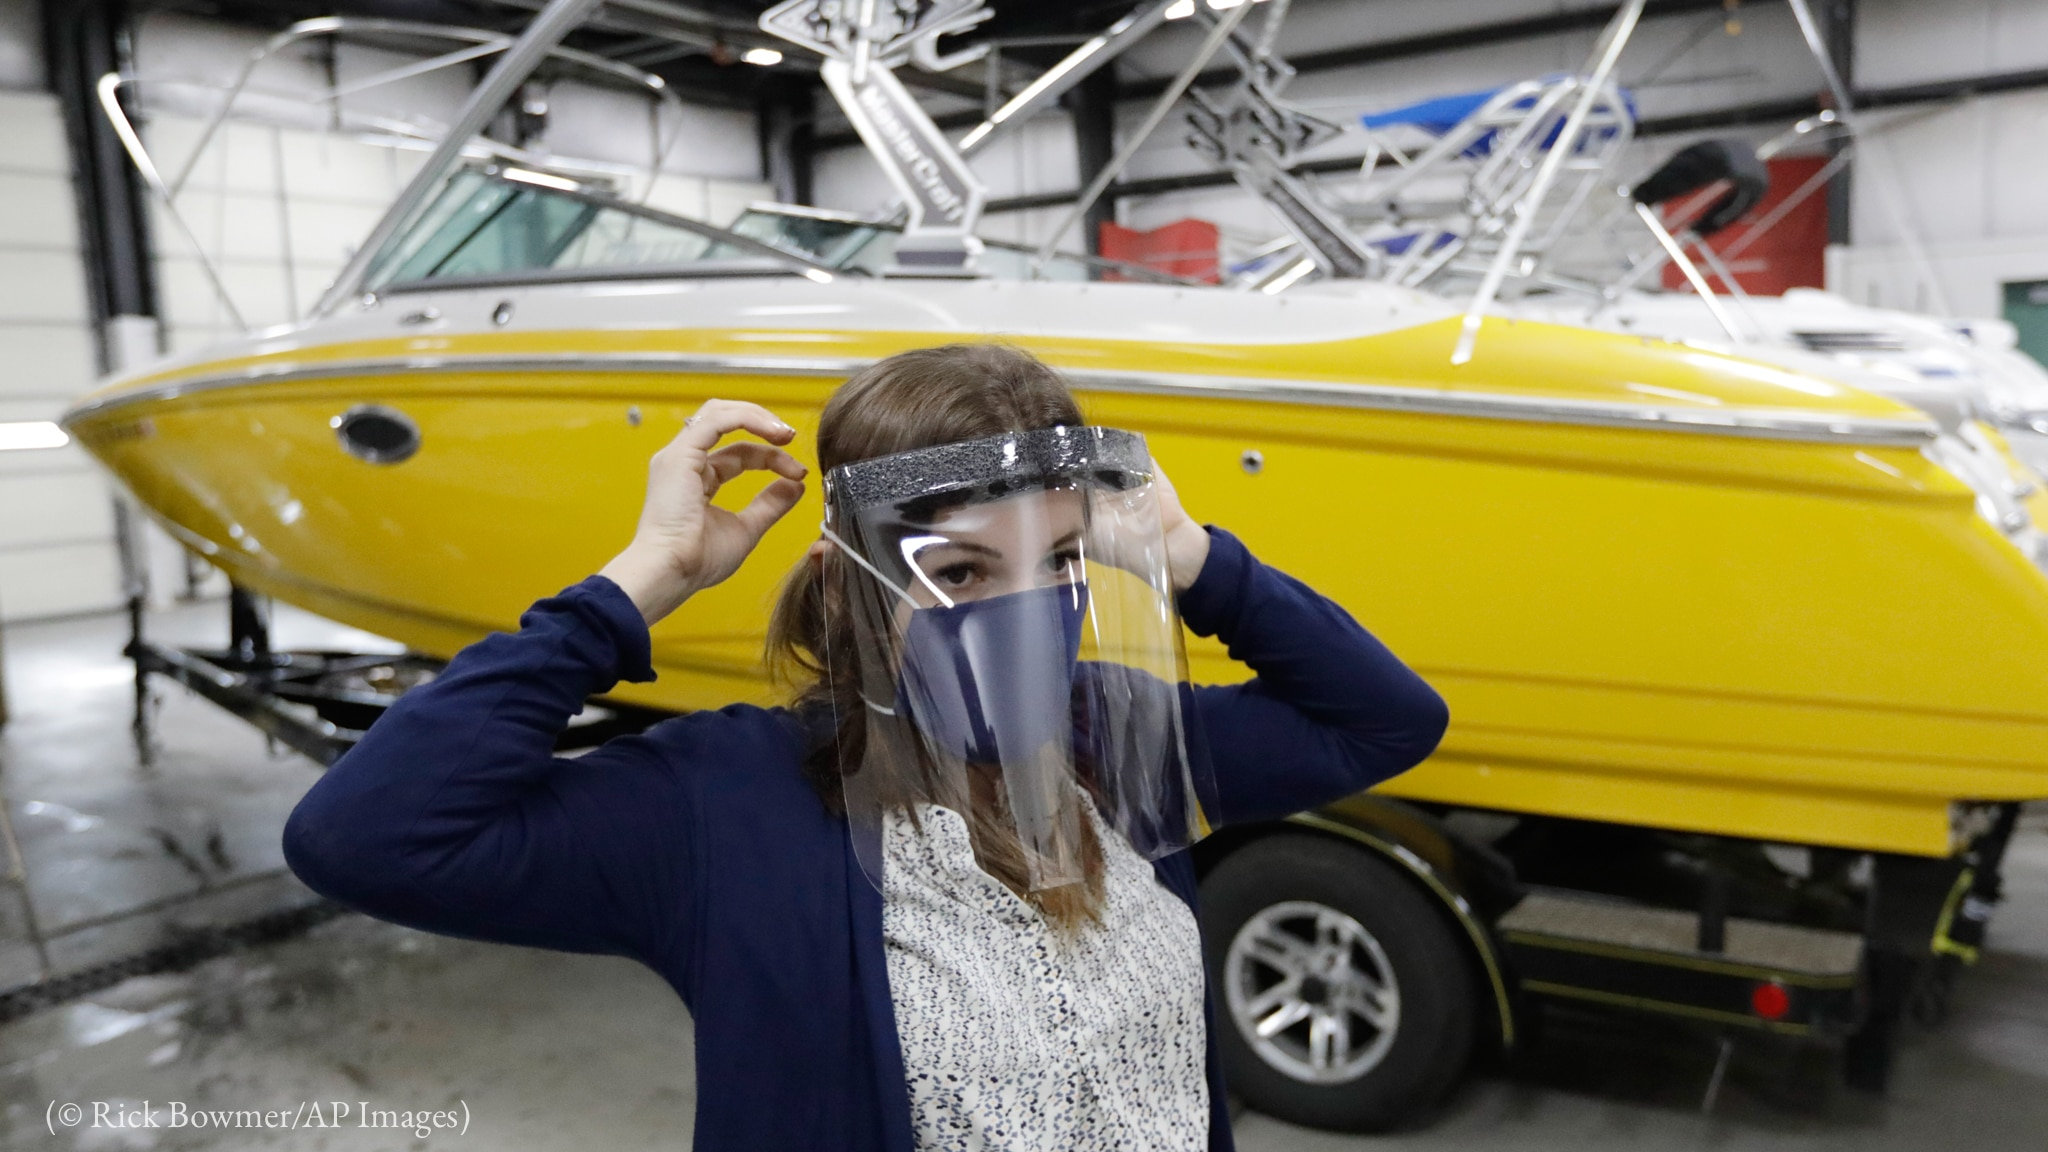 Woman standing in front of a boat while wearing a face mask and face shield (© Rick Bowmer/AP Images)